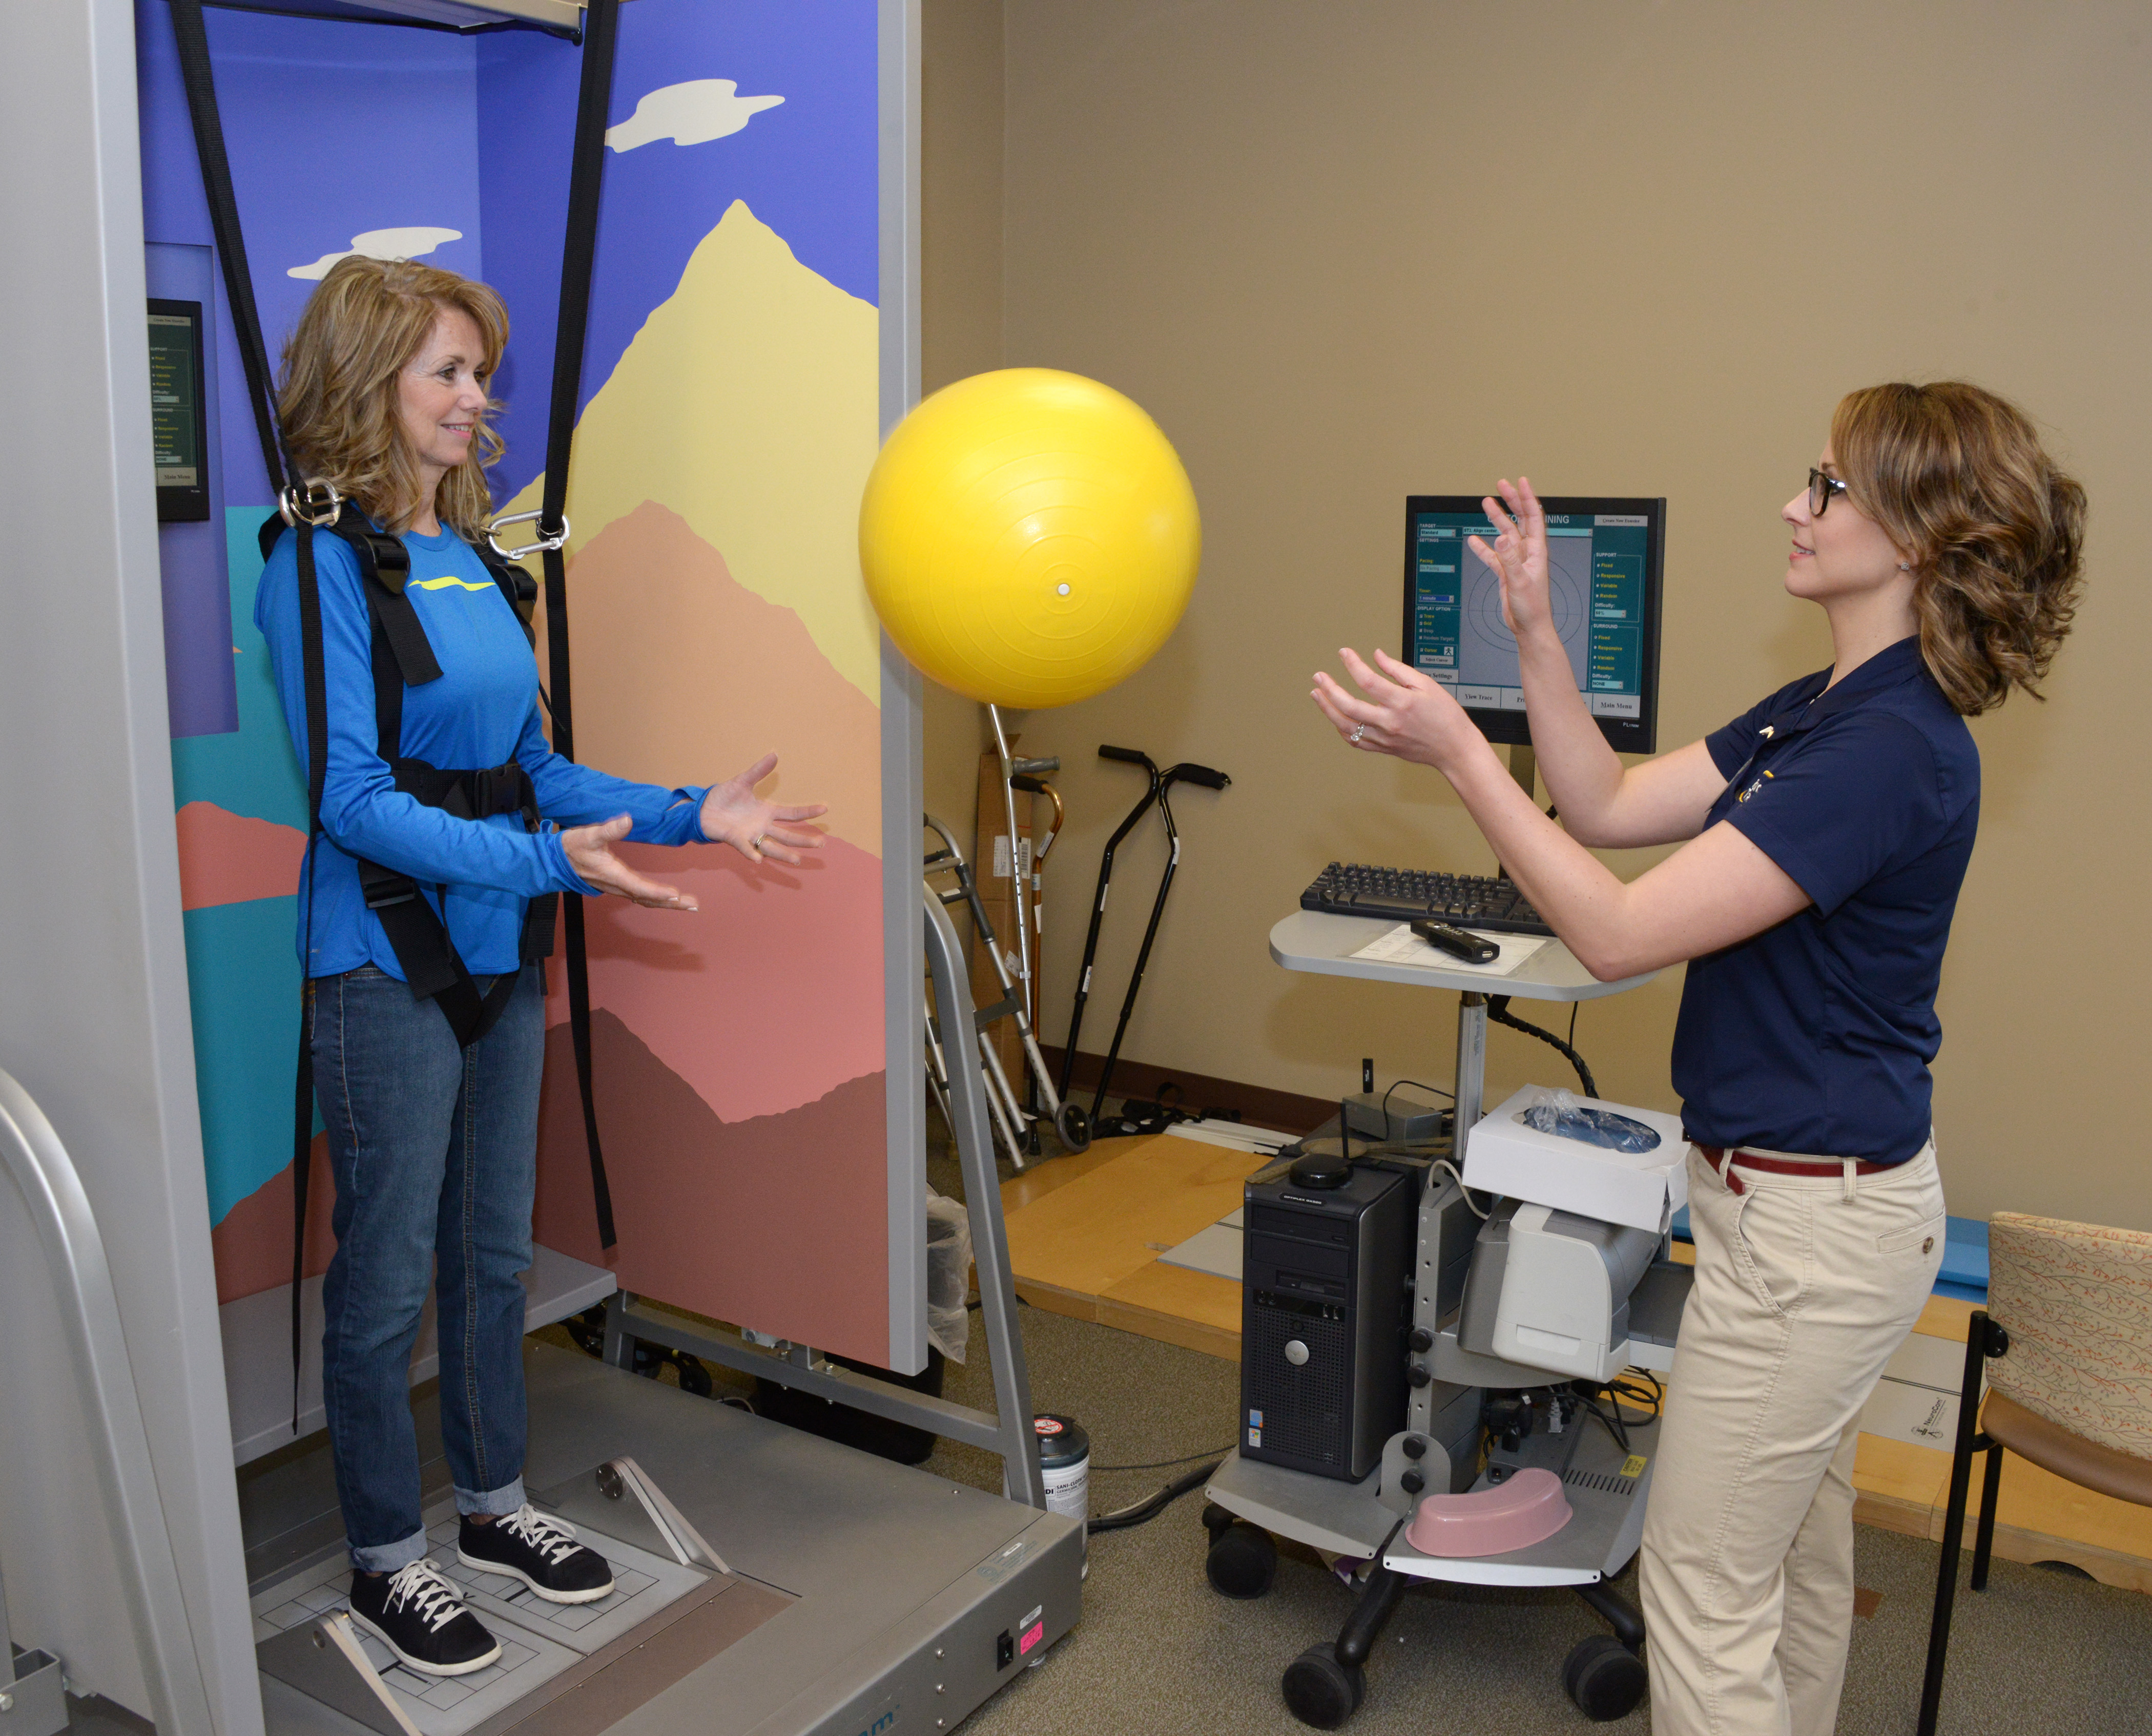 Equipment pediatric physical therapy - Equipment Pediatric Physical Therapy 34